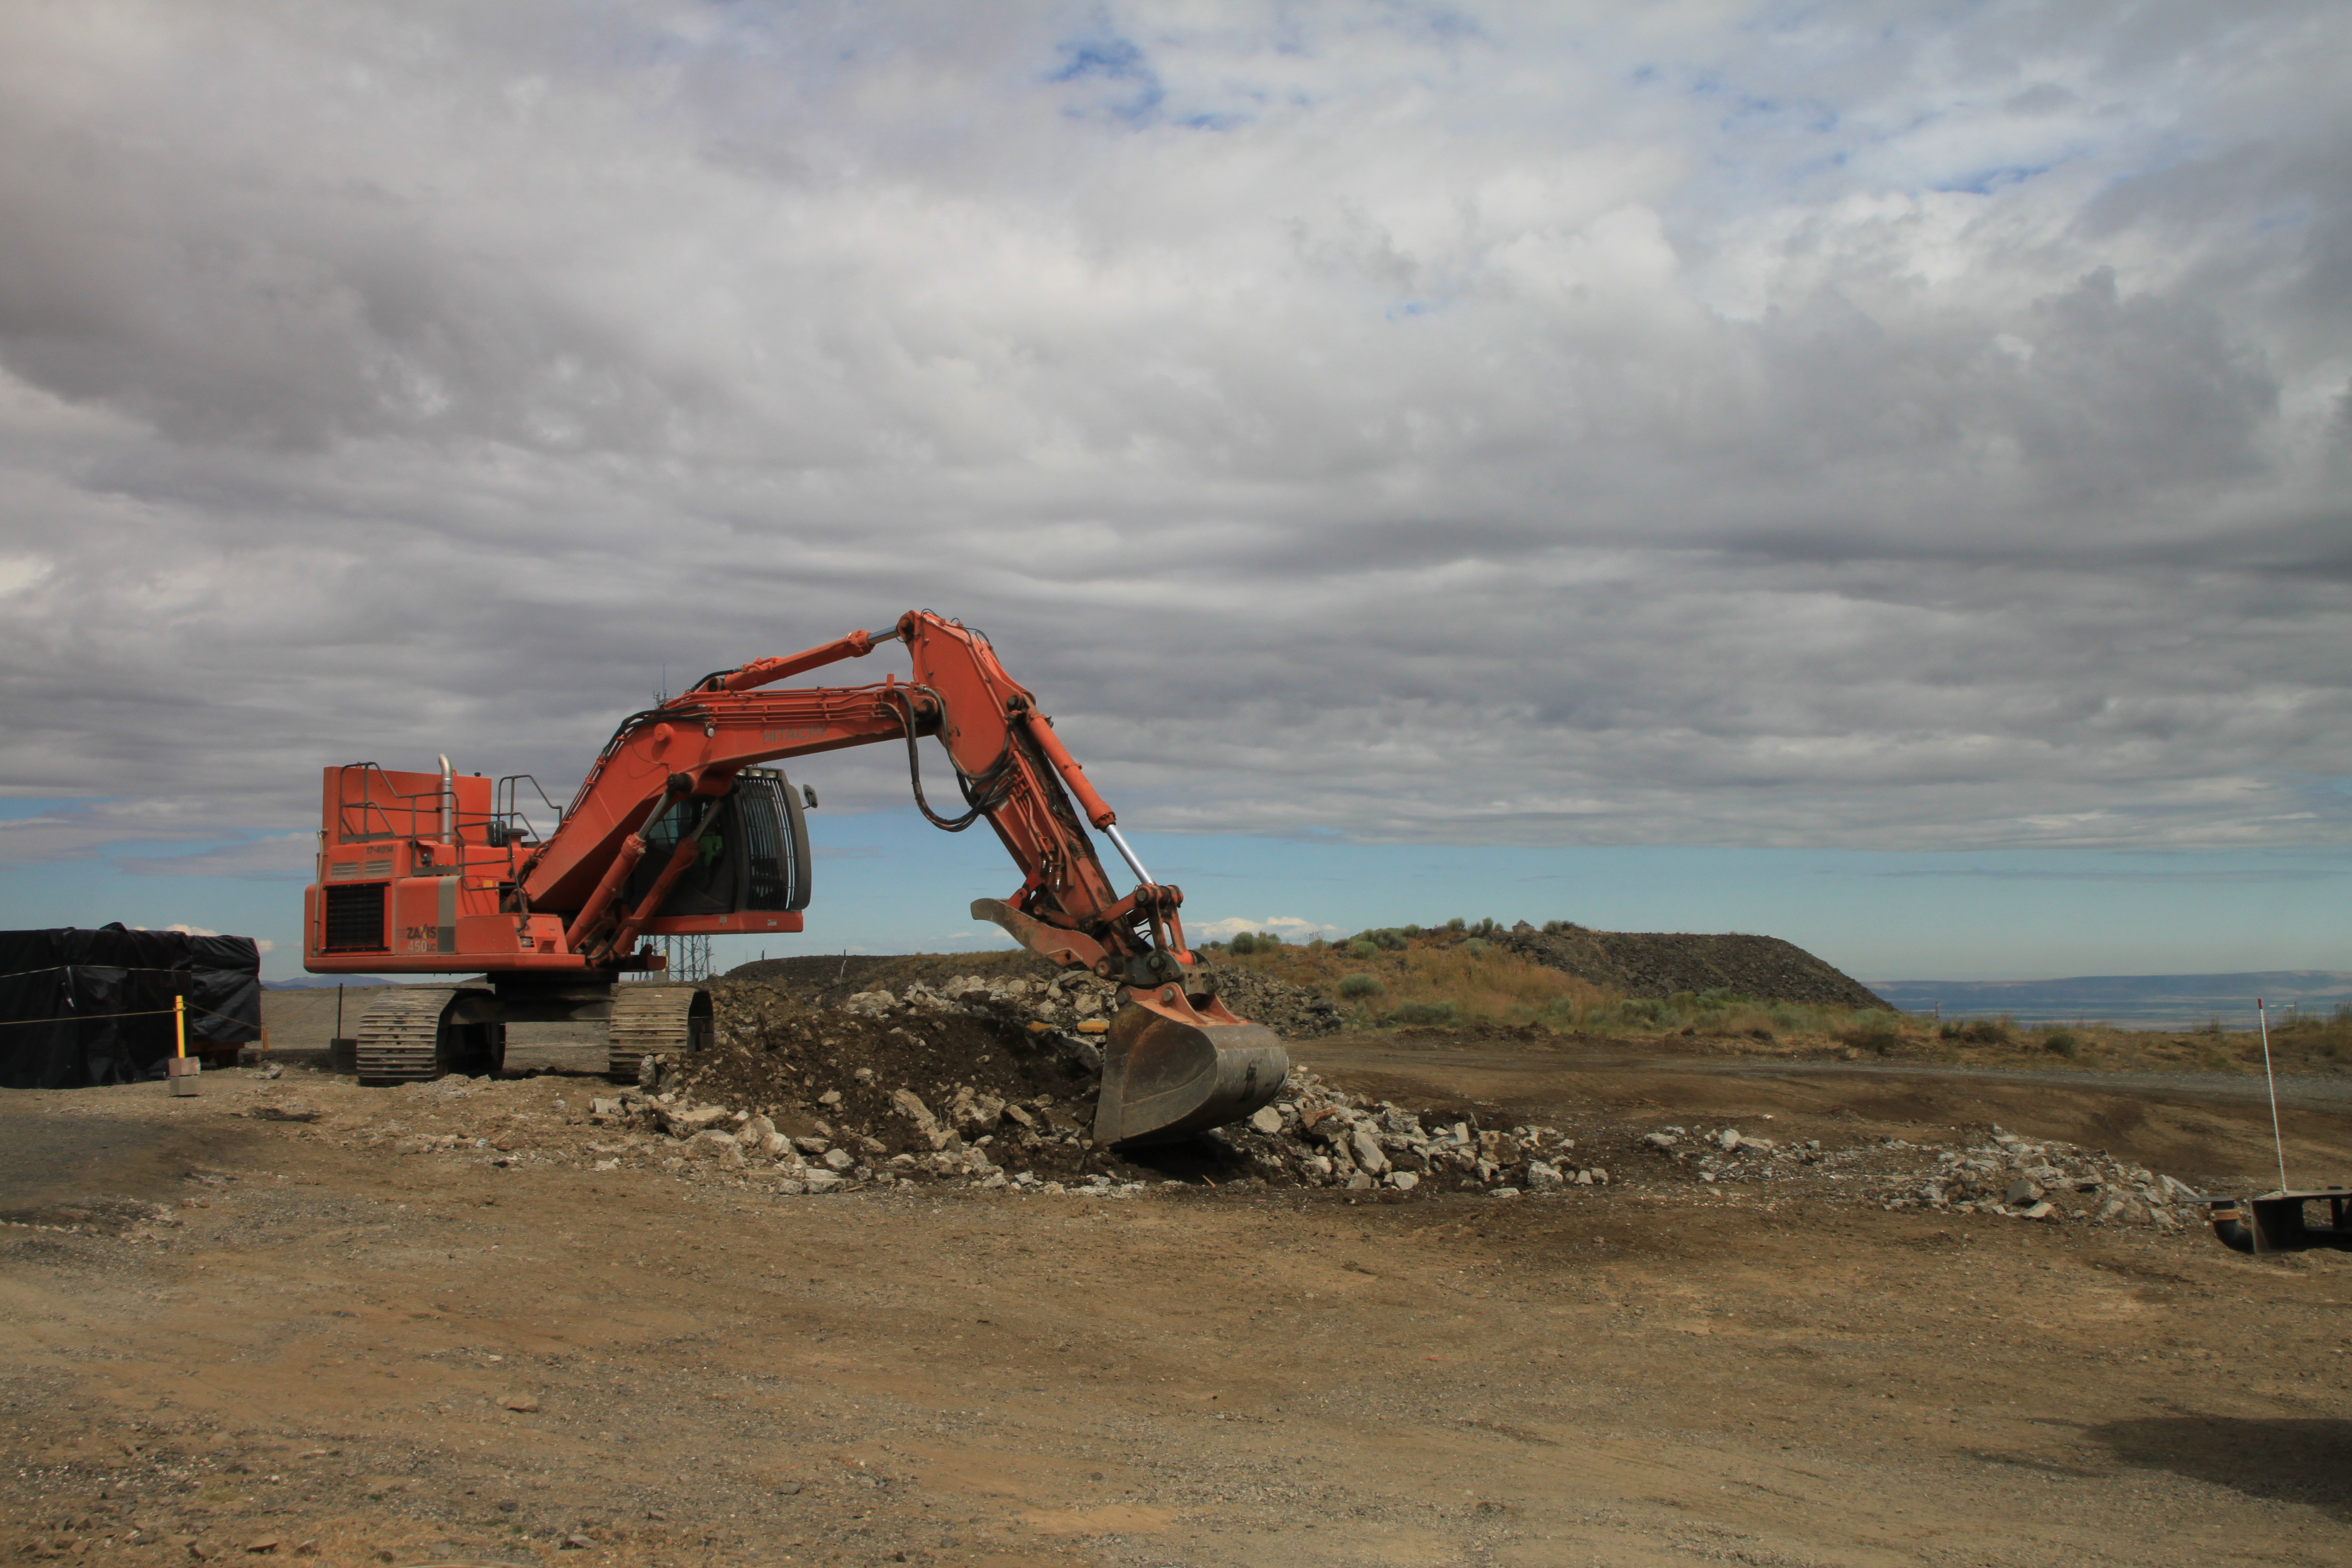 Stimulus funds cleanup of historical mountaintop at Hanford (7421734204).jpg The 6652-C Space Science Laboratory after demolition atop Rattlesnake